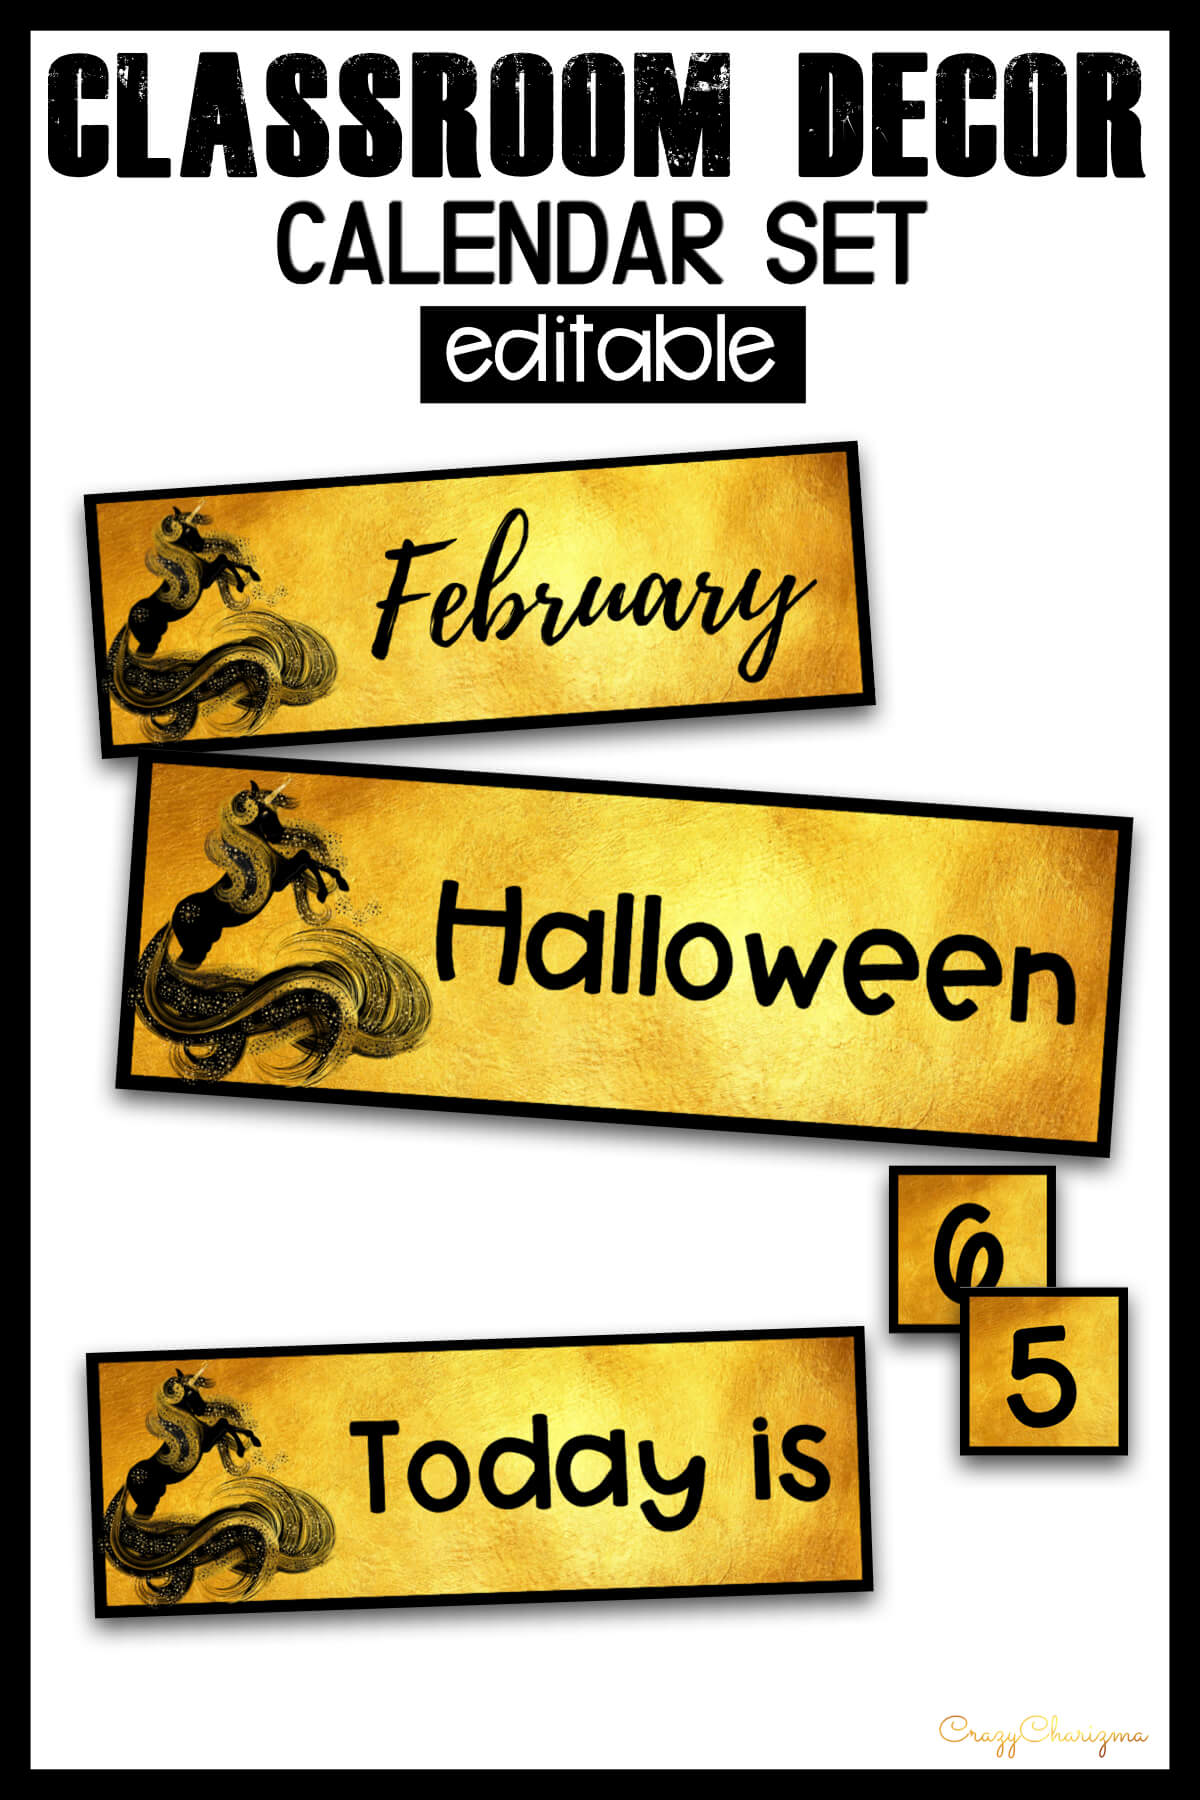 Looking for bright and clear EDITABLE calendar set? Spice your classroom with this visually appealing classroom decor!